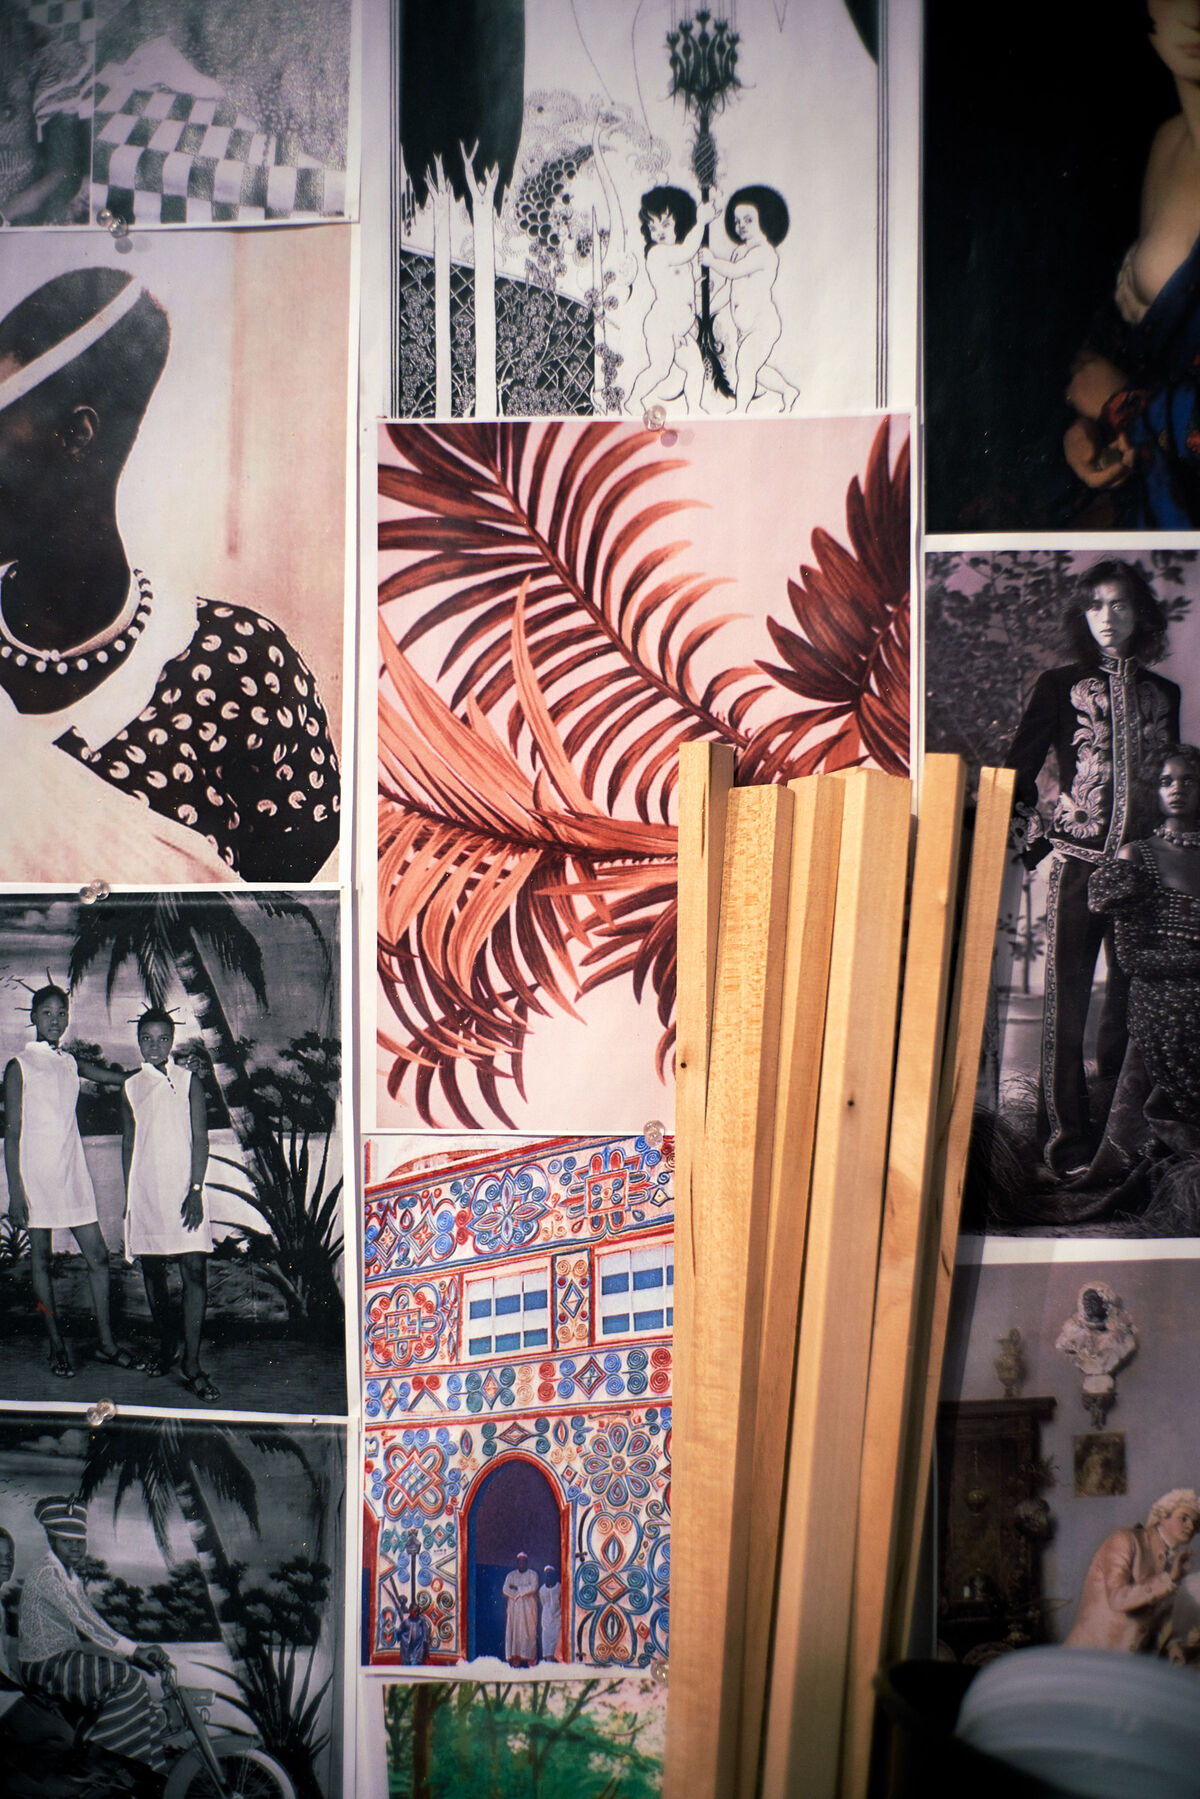 Lina Iris Viktor's studio wall featuring various reference images. Photo by Alex John Beck for Artsy.